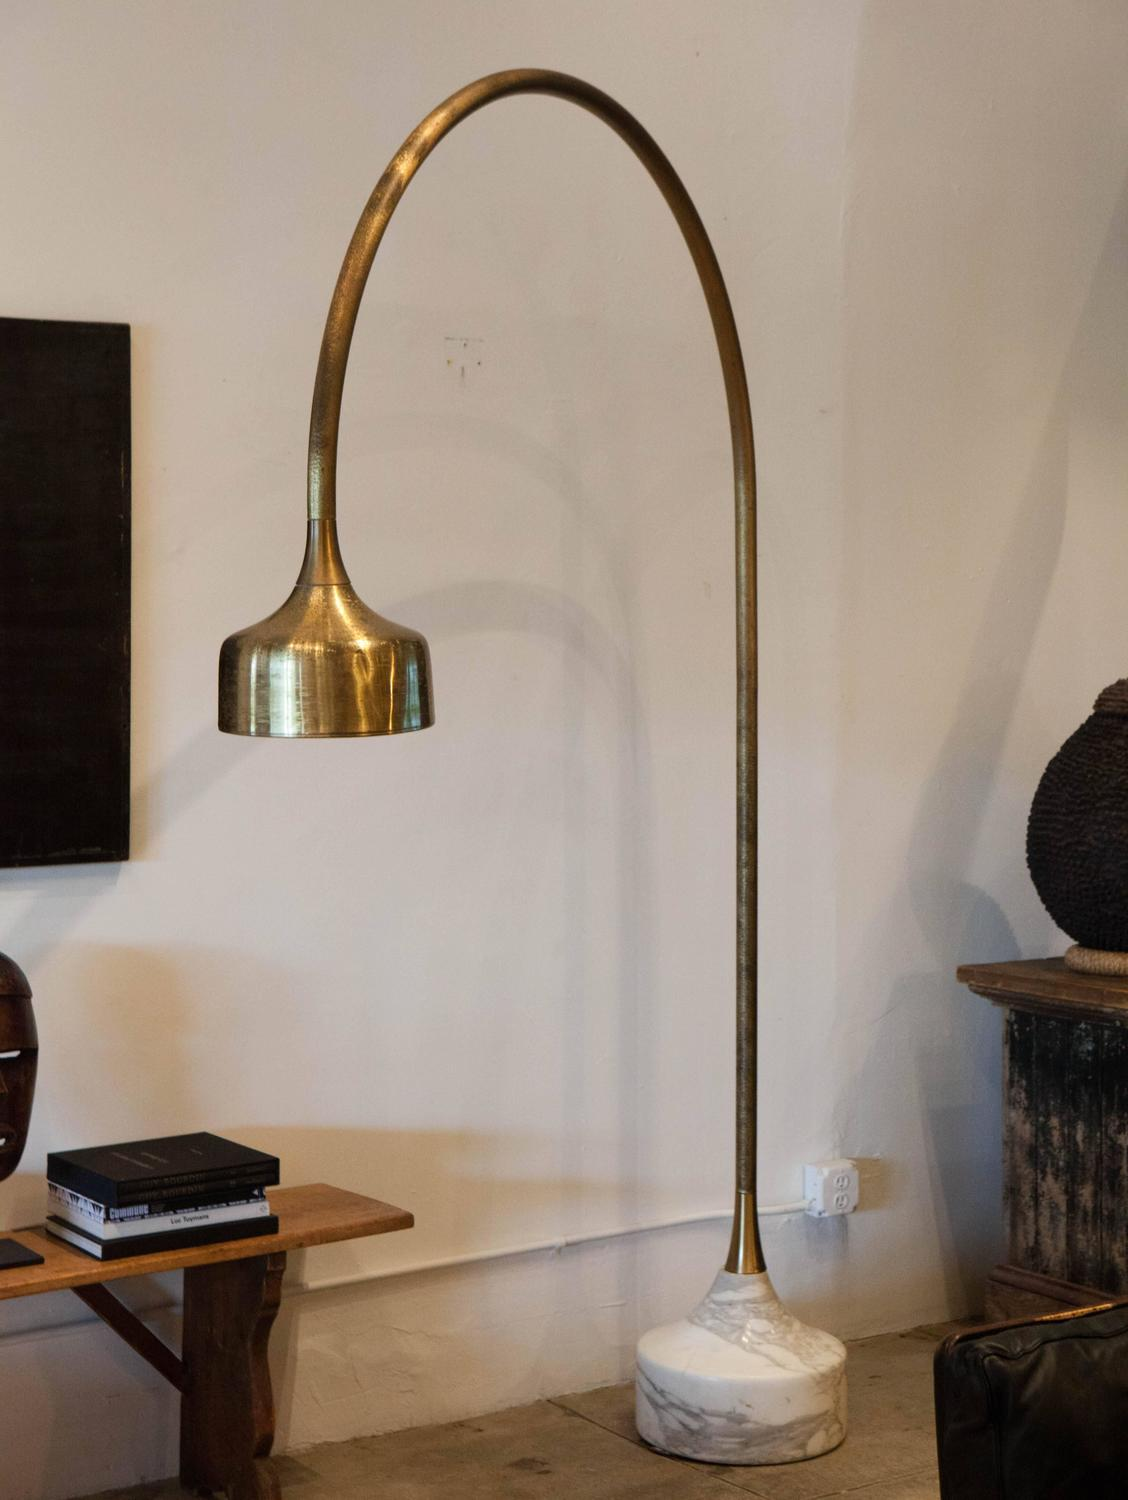 luciano frigerio arc floor lamp italy 1970 for sale at 1stdibs. Black Bedroom Furniture Sets. Home Design Ideas